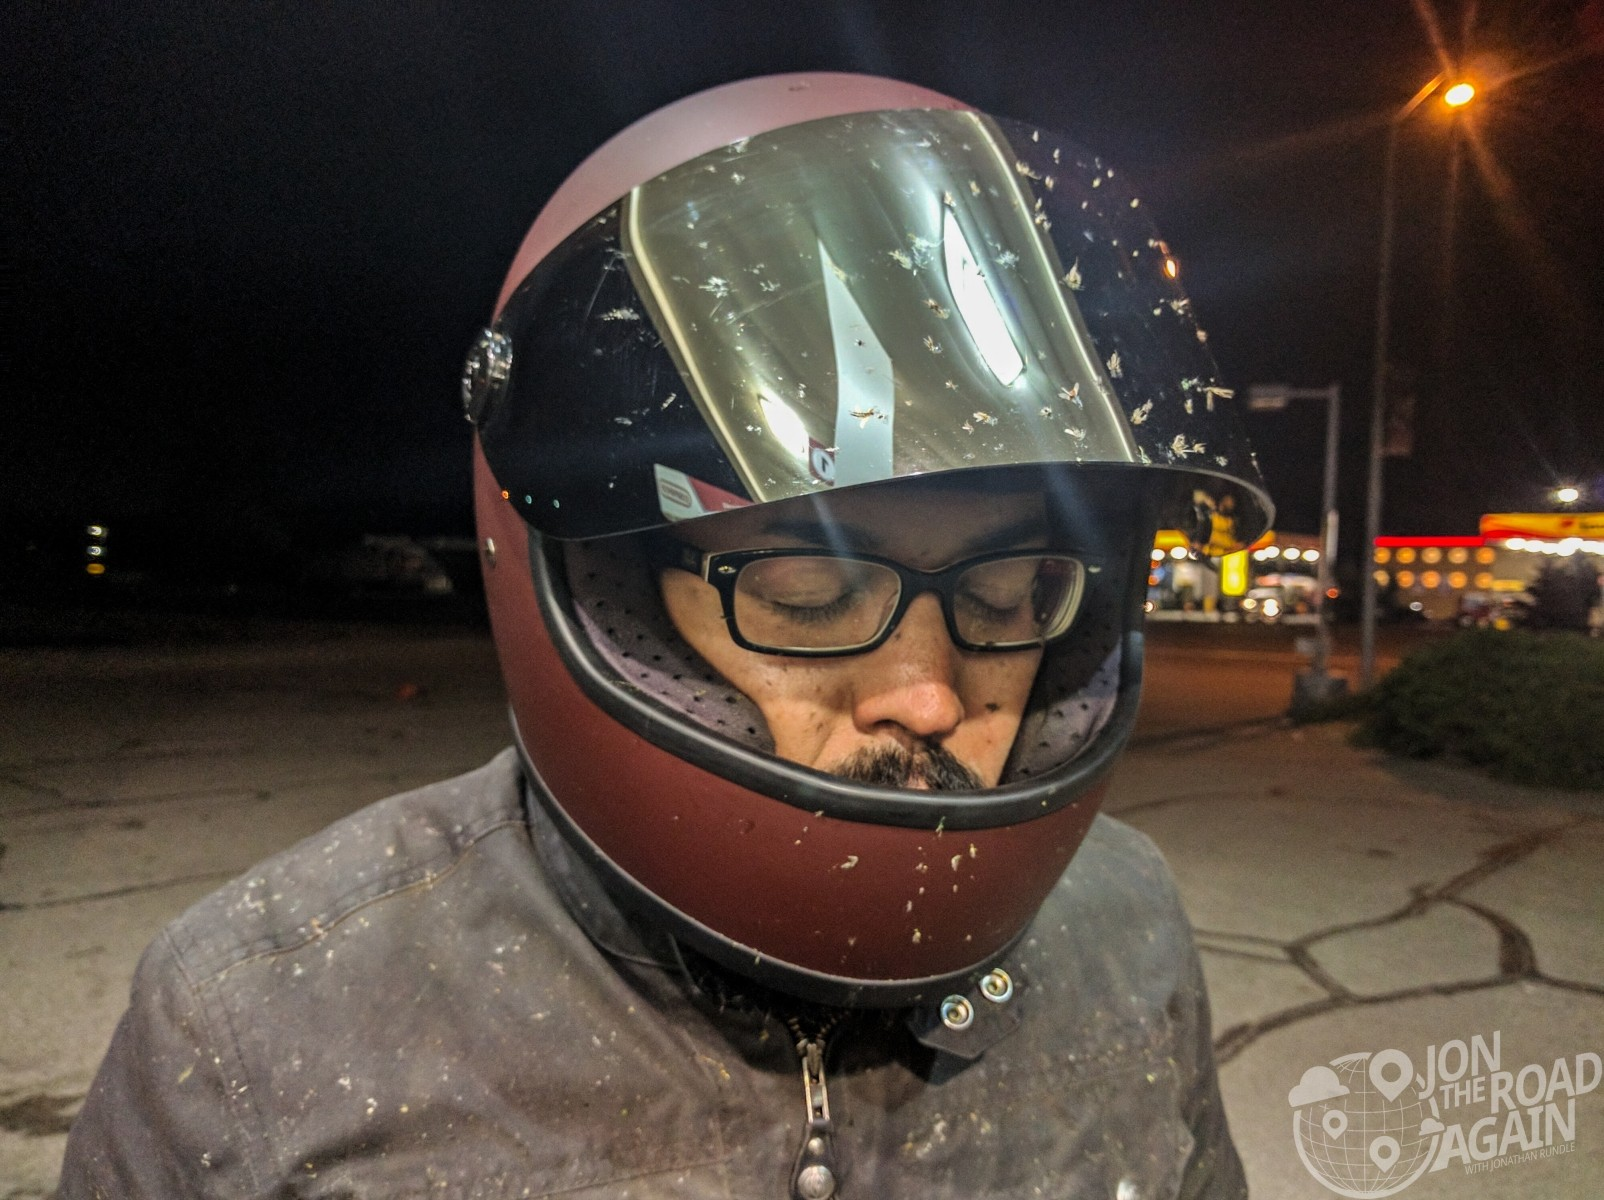 Night riding was not kind to Michael